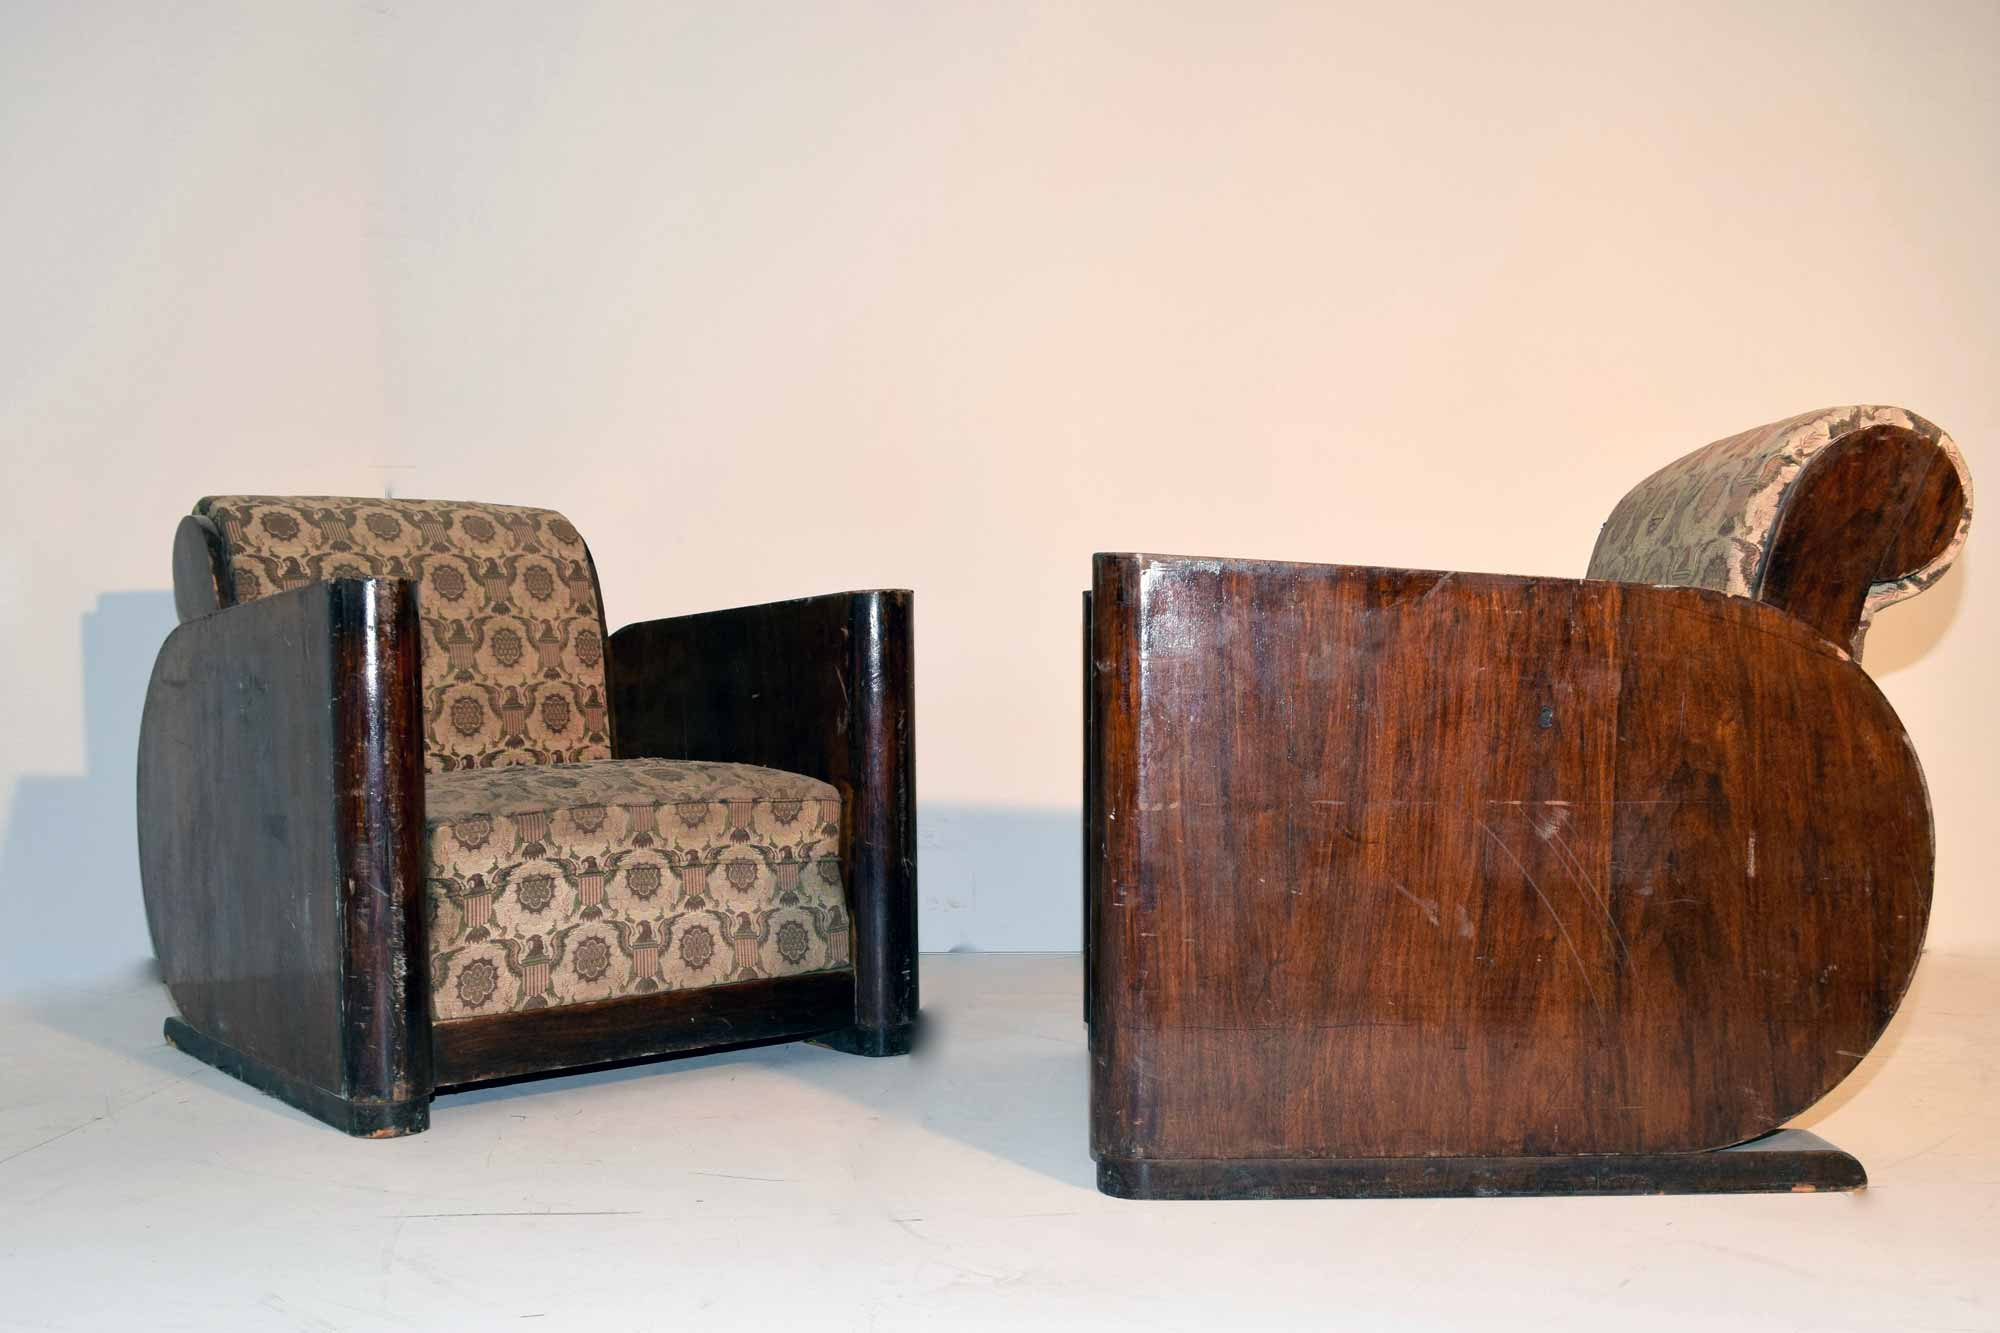 art deco sessel paar palisander b100xh80xt100 panthers woods. Black Bedroom Furniture Sets. Home Design Ideas